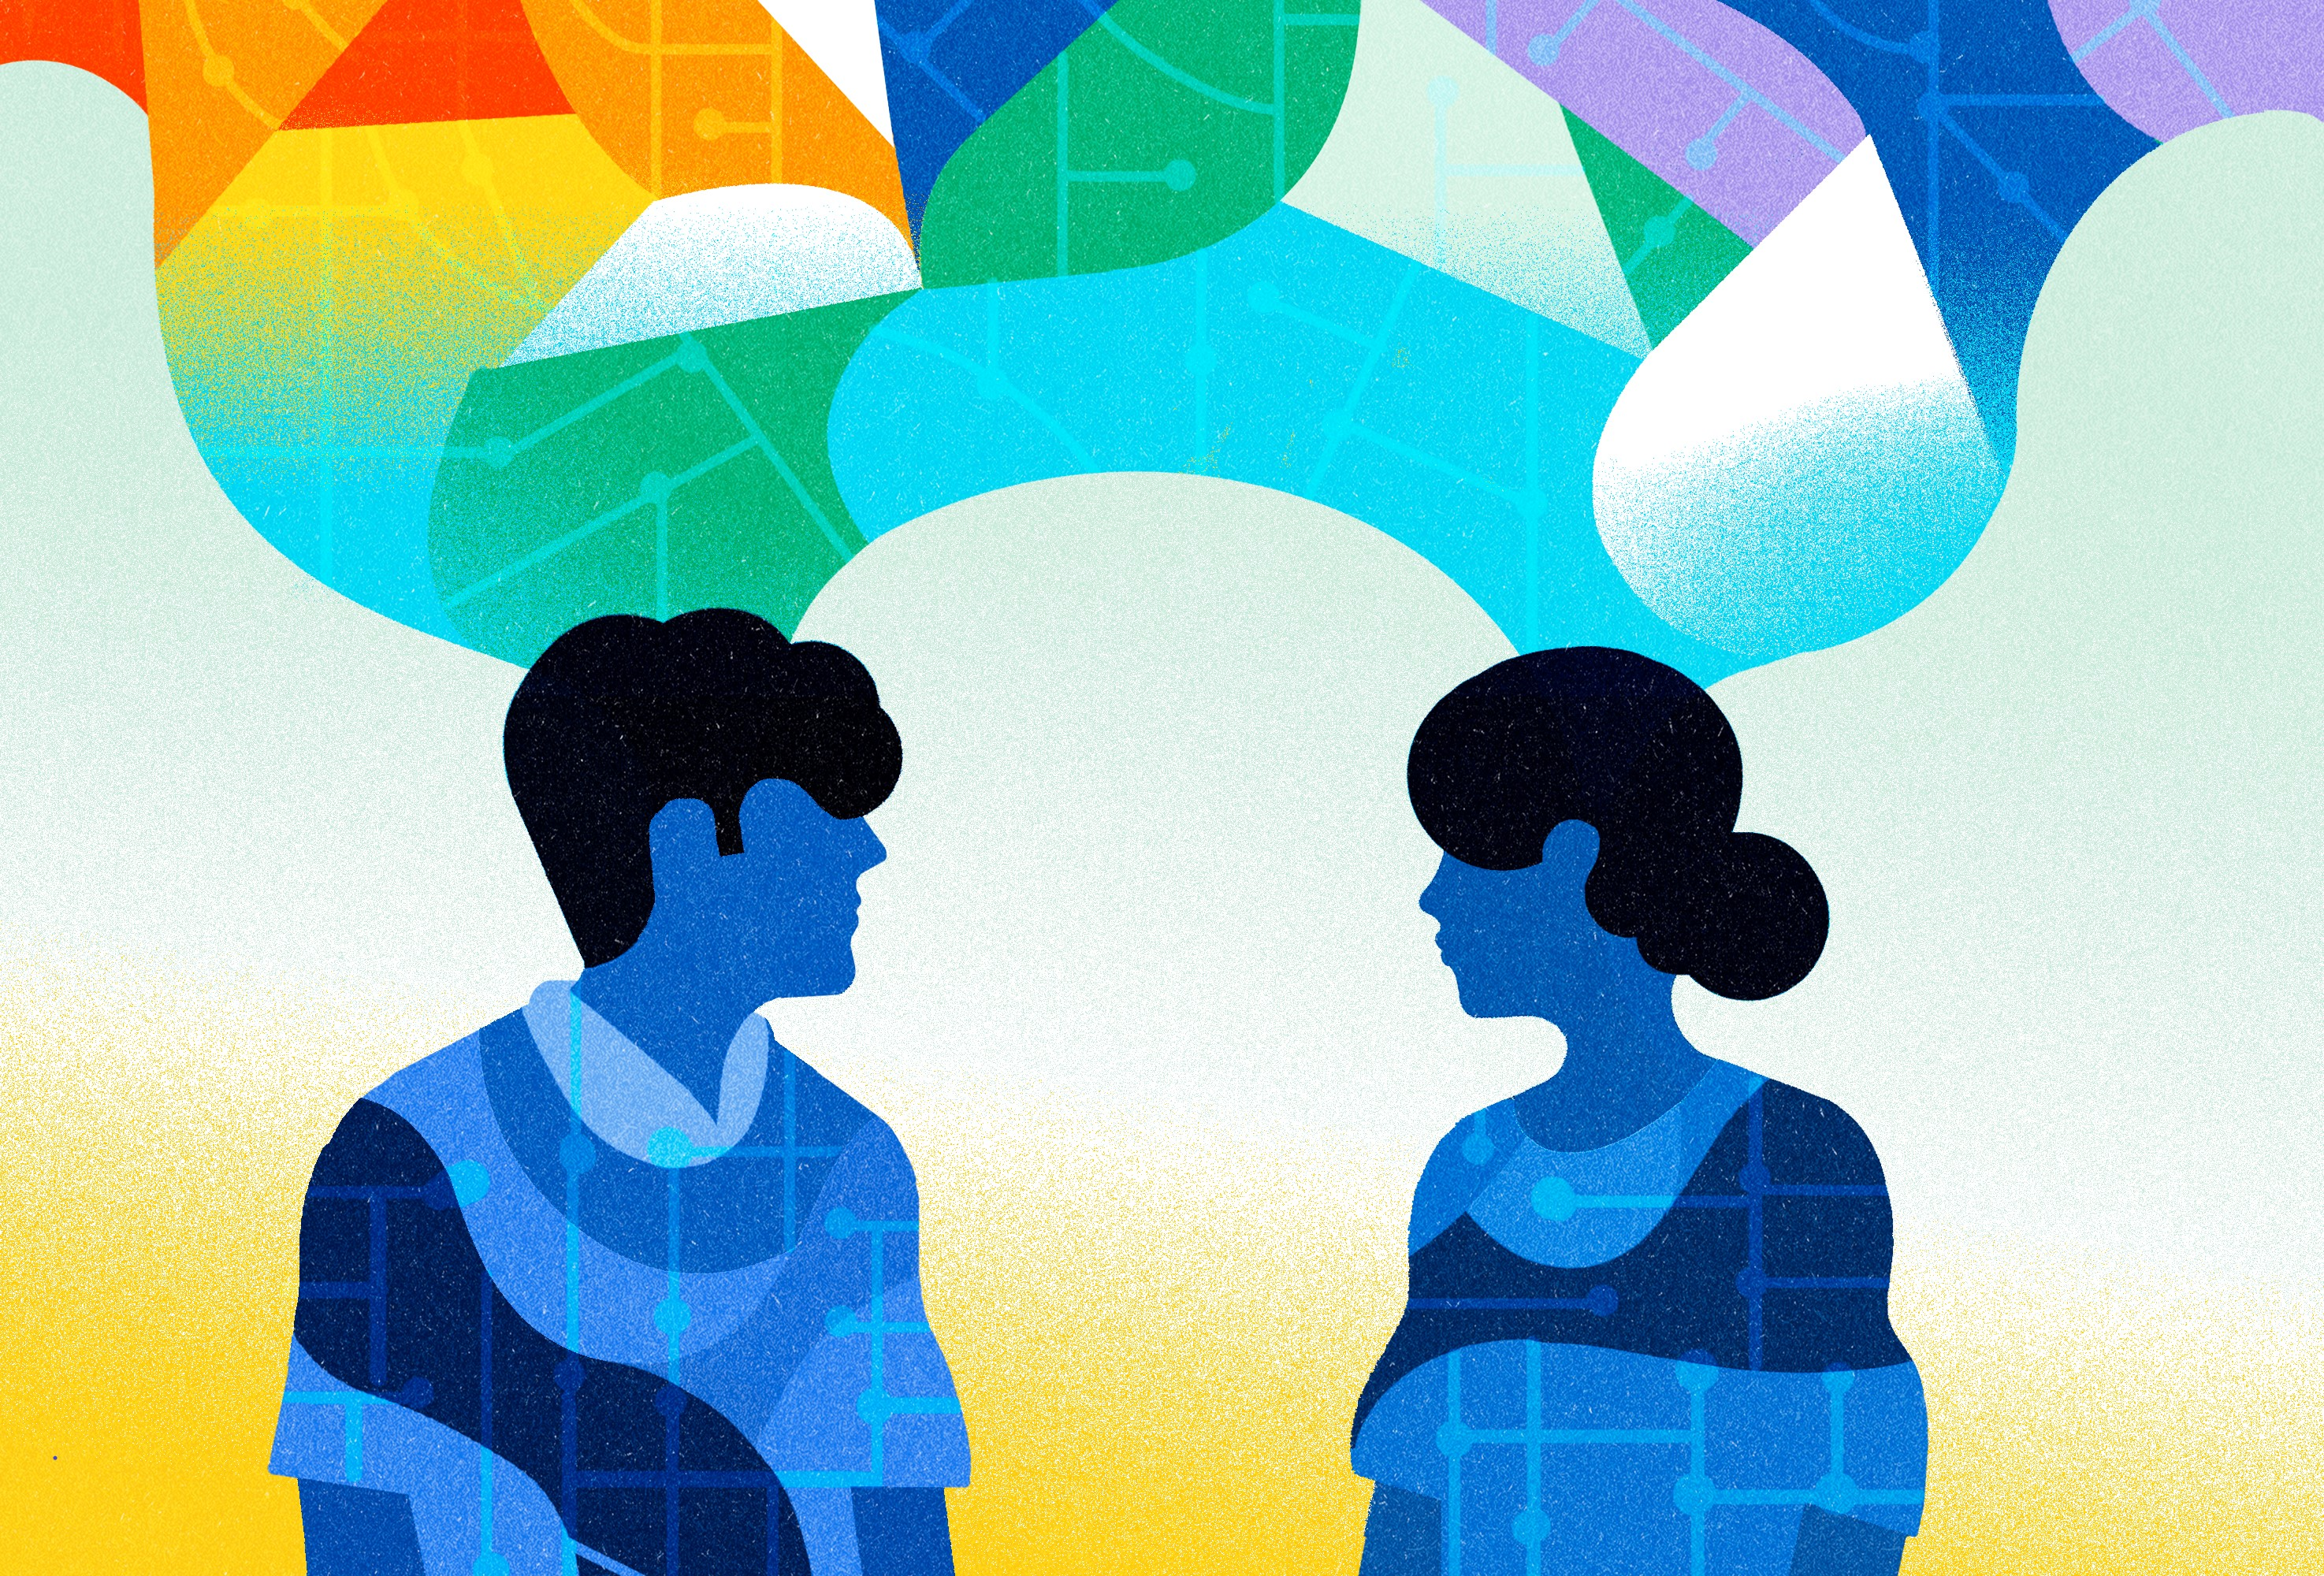 An illustration of a man and a woman looking at each other having a conversation.